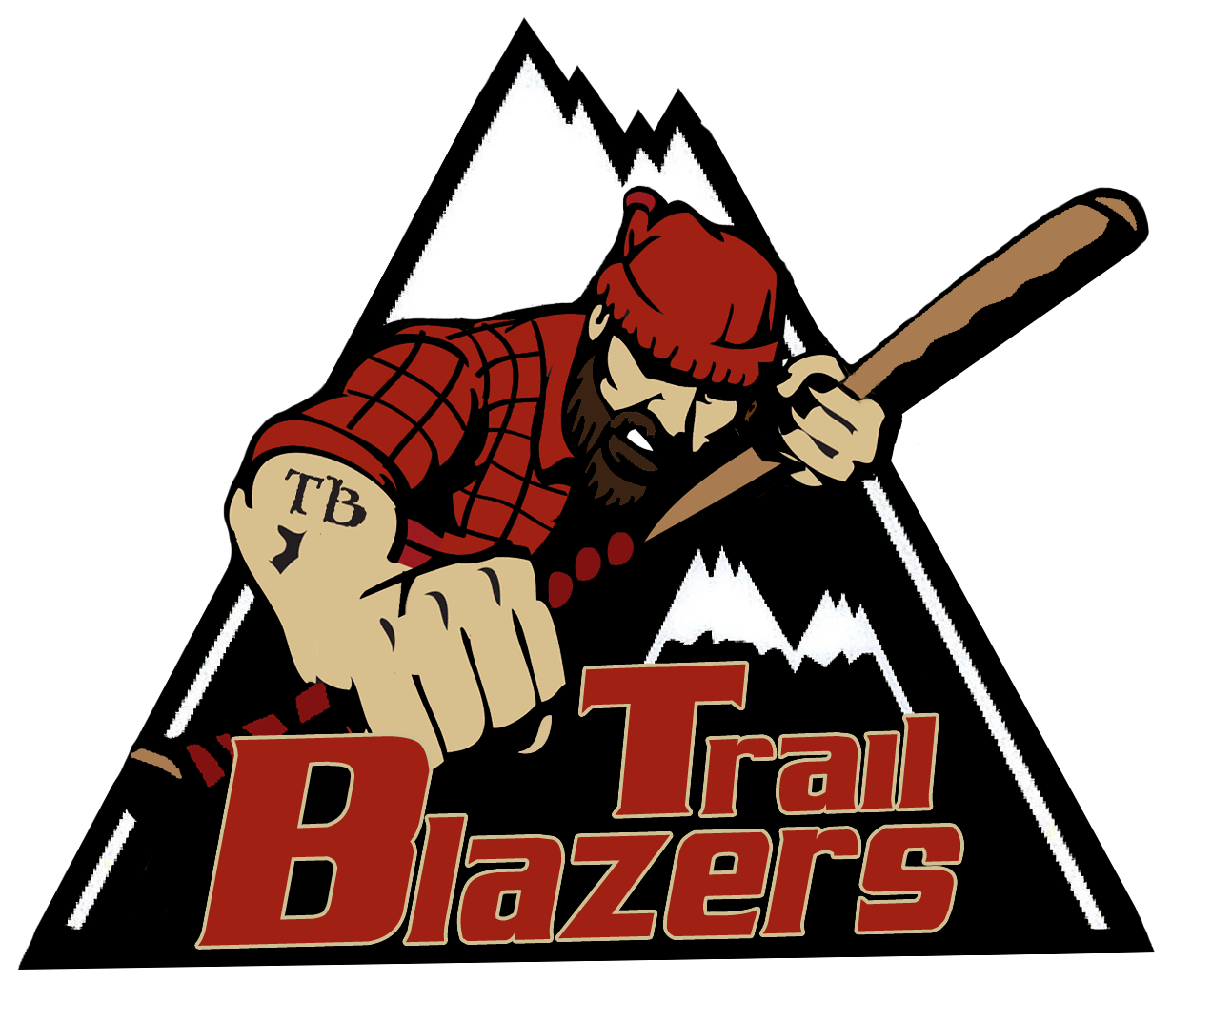 Country baseball clipart jpg library Home of The Adirondack Trail Blazers | Wix.com jpg library